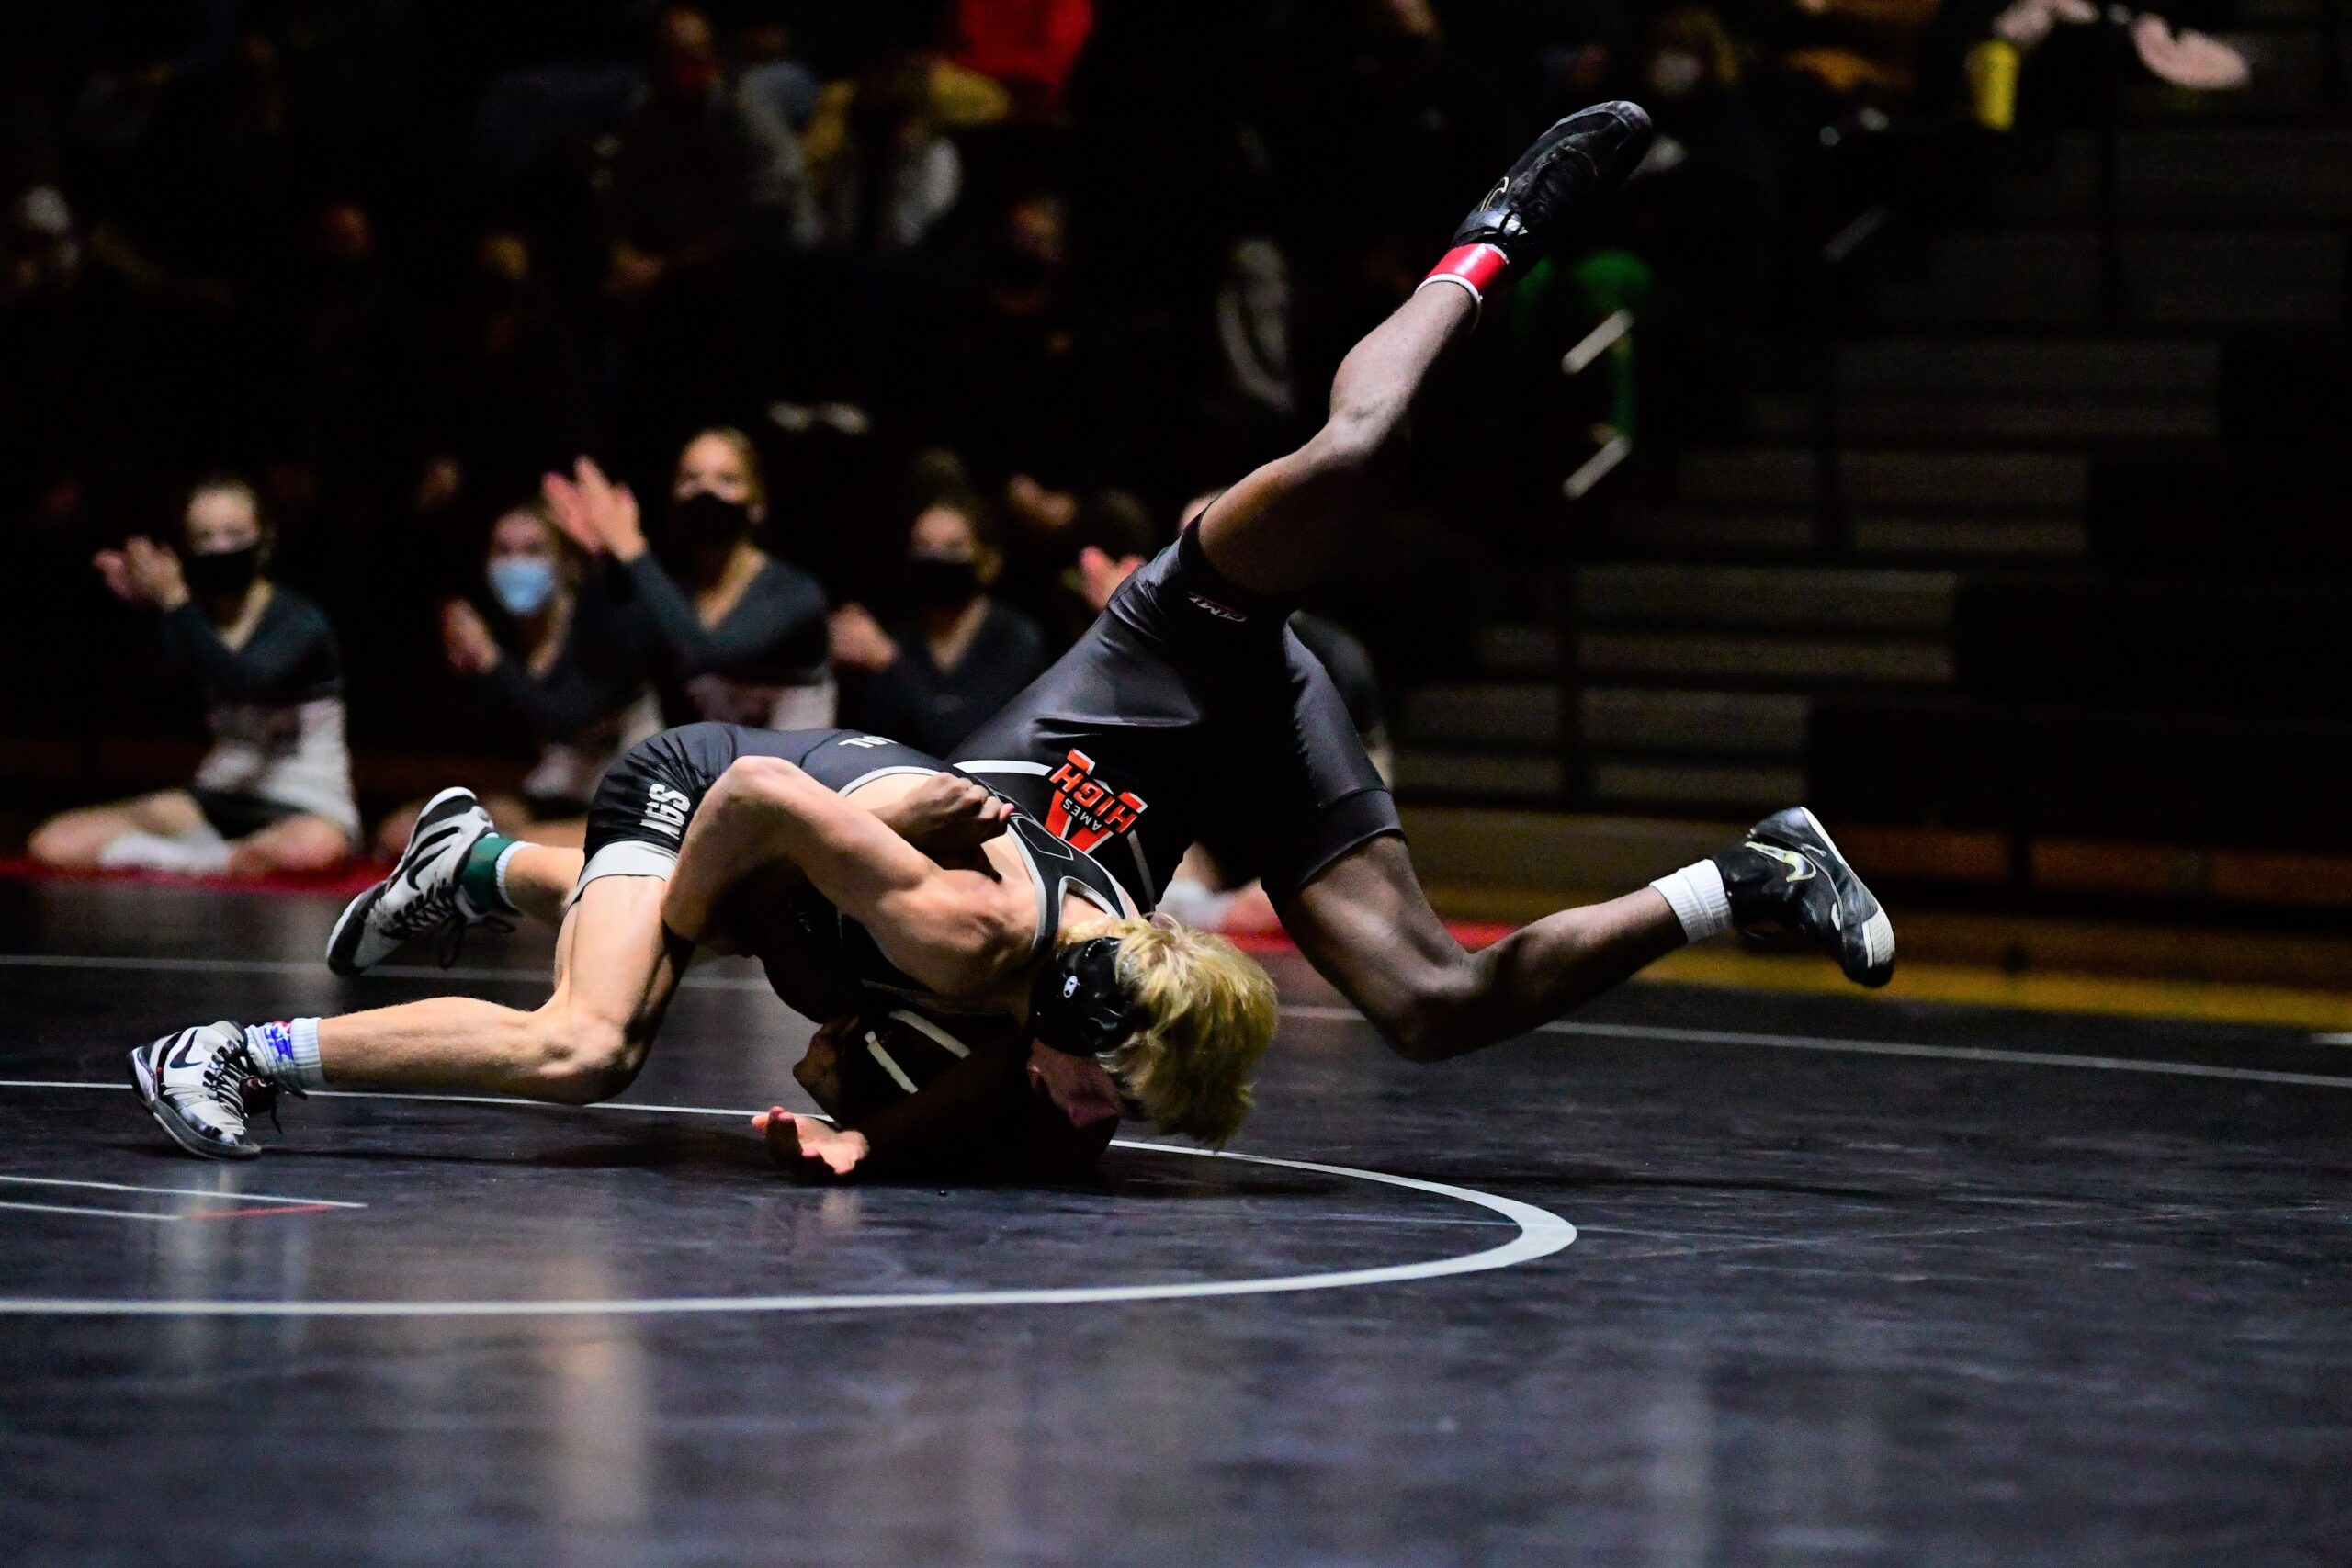 Bruhl returns to lineup, helps Jaguars to 4-1 record at Osage Duals